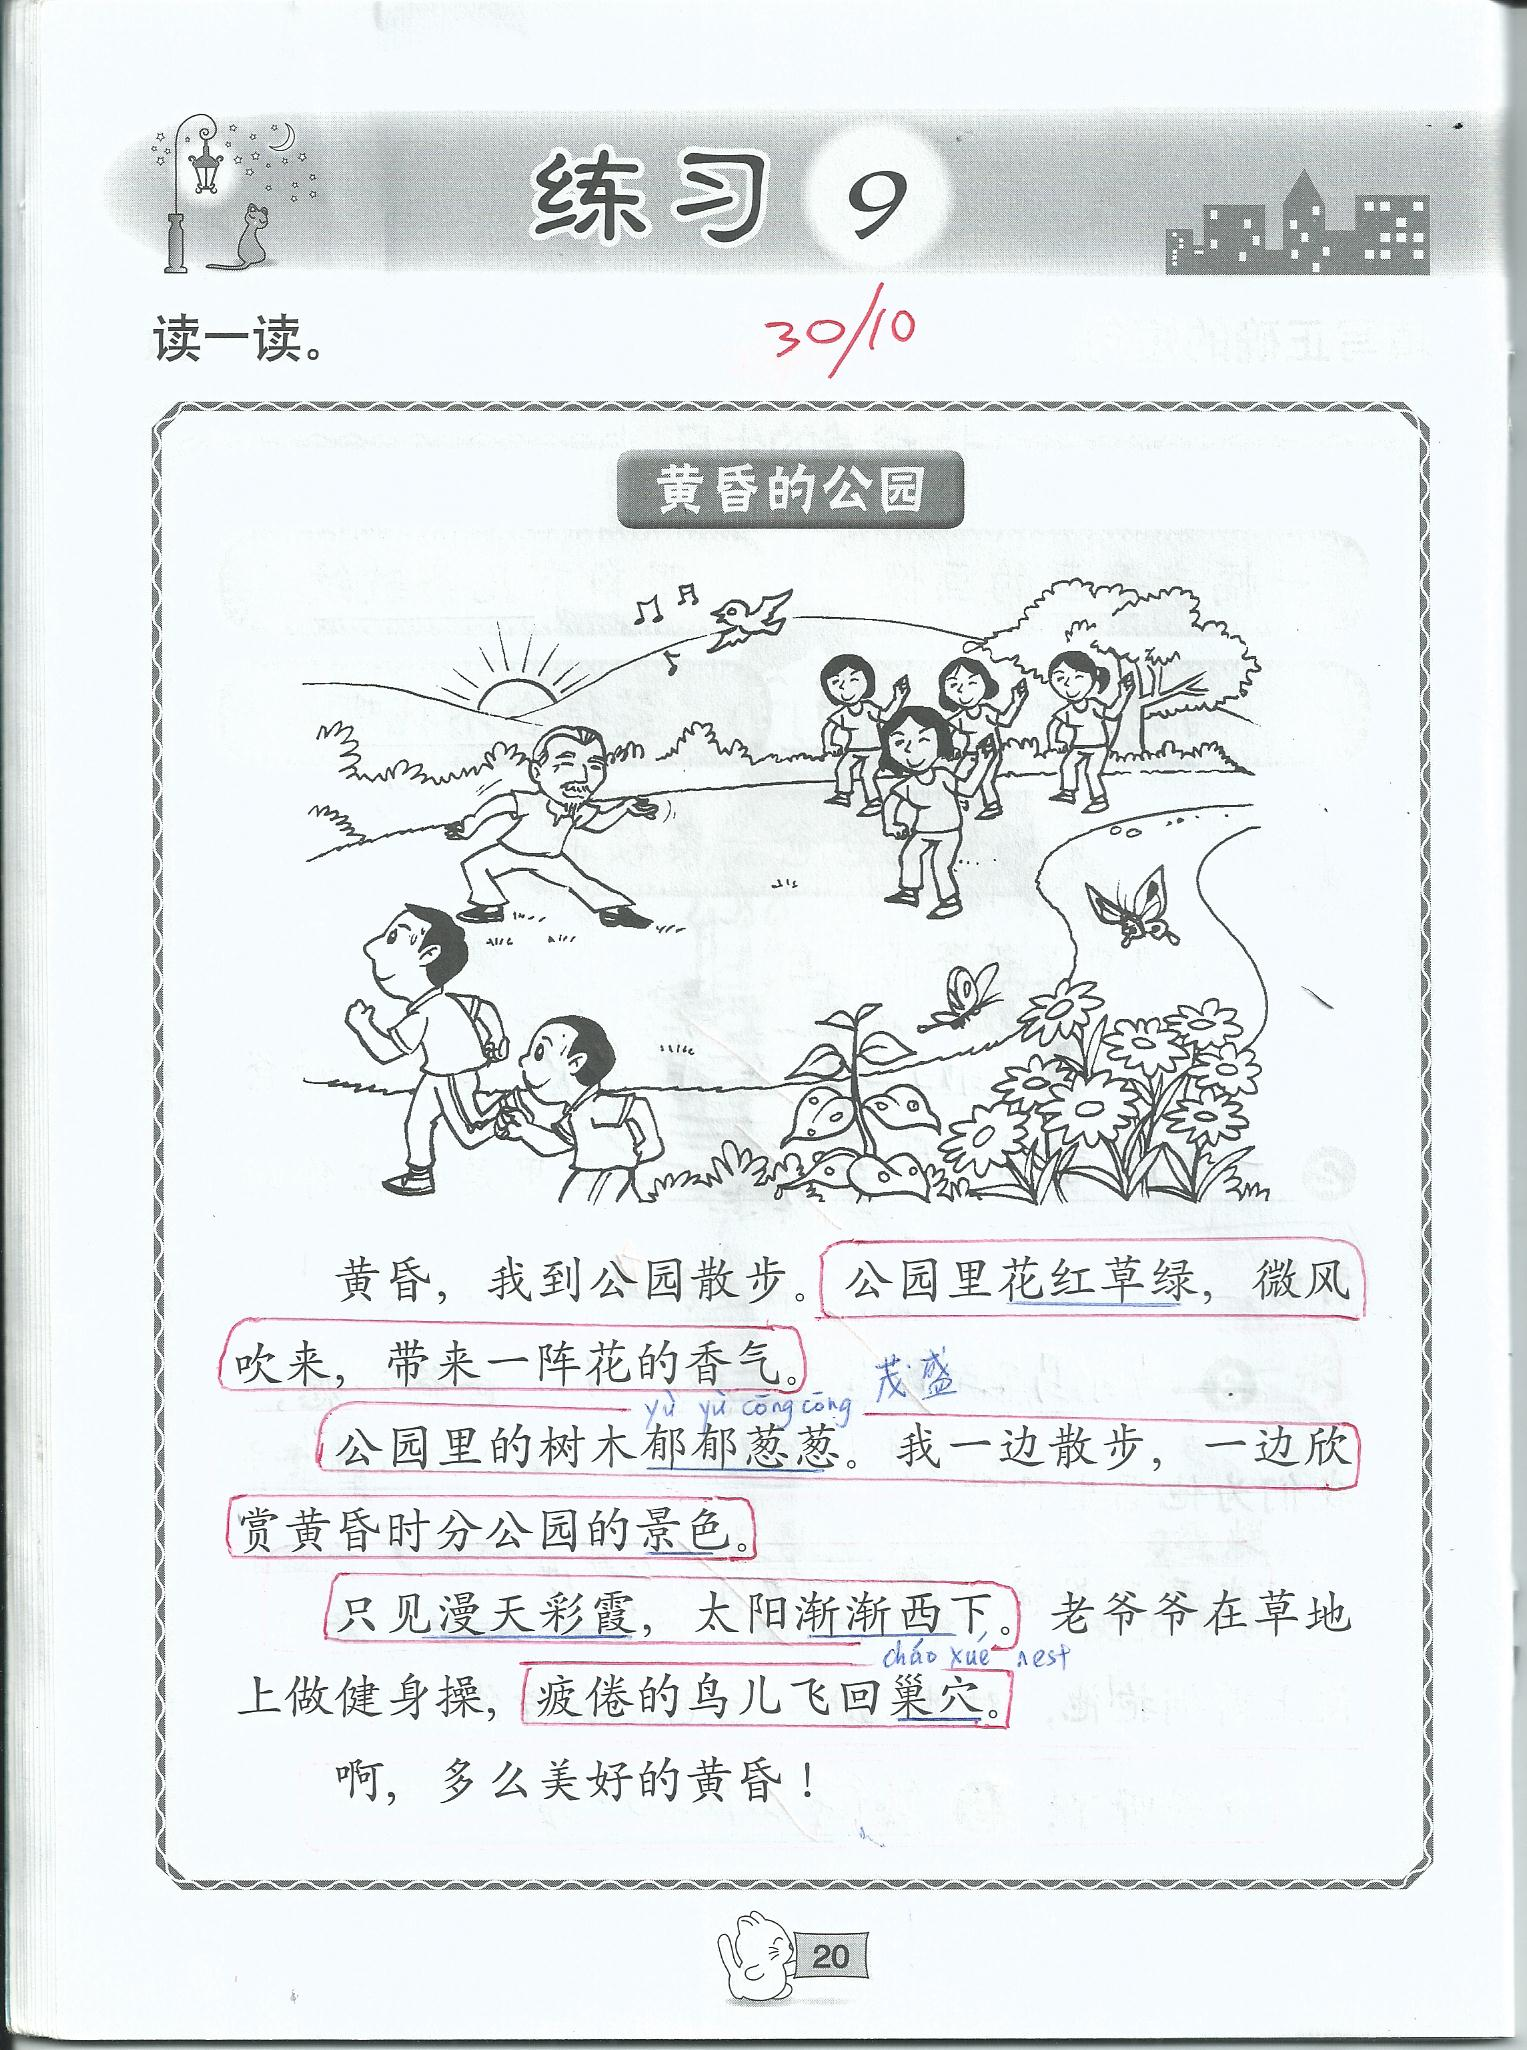 Worksheets Enopi Worksheets chinese life long sharing page 14 writing0003